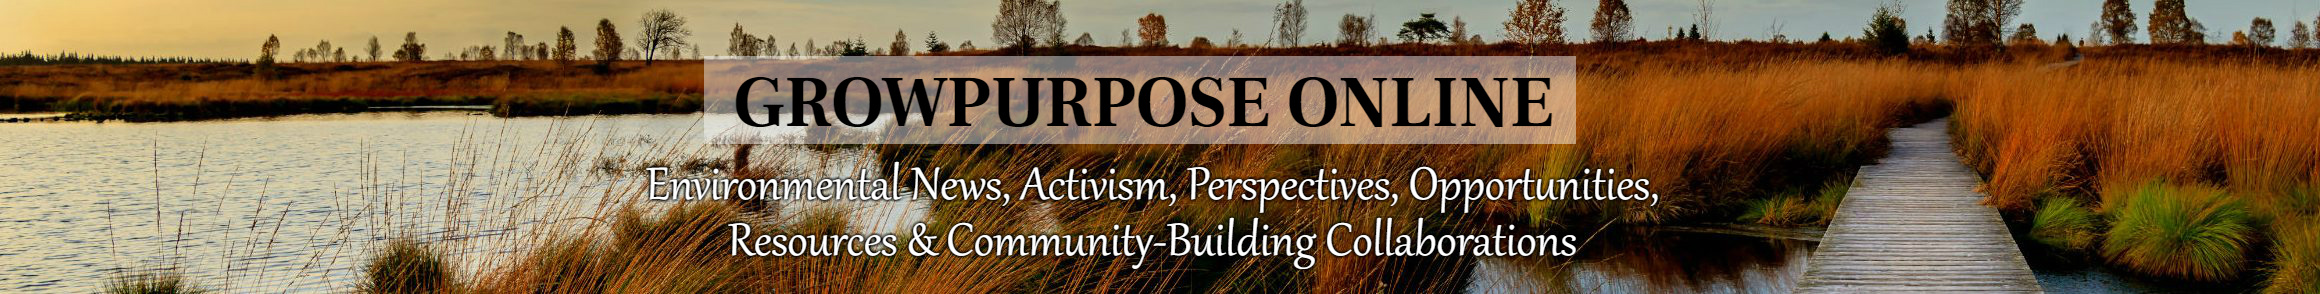 GrowPurpose Online